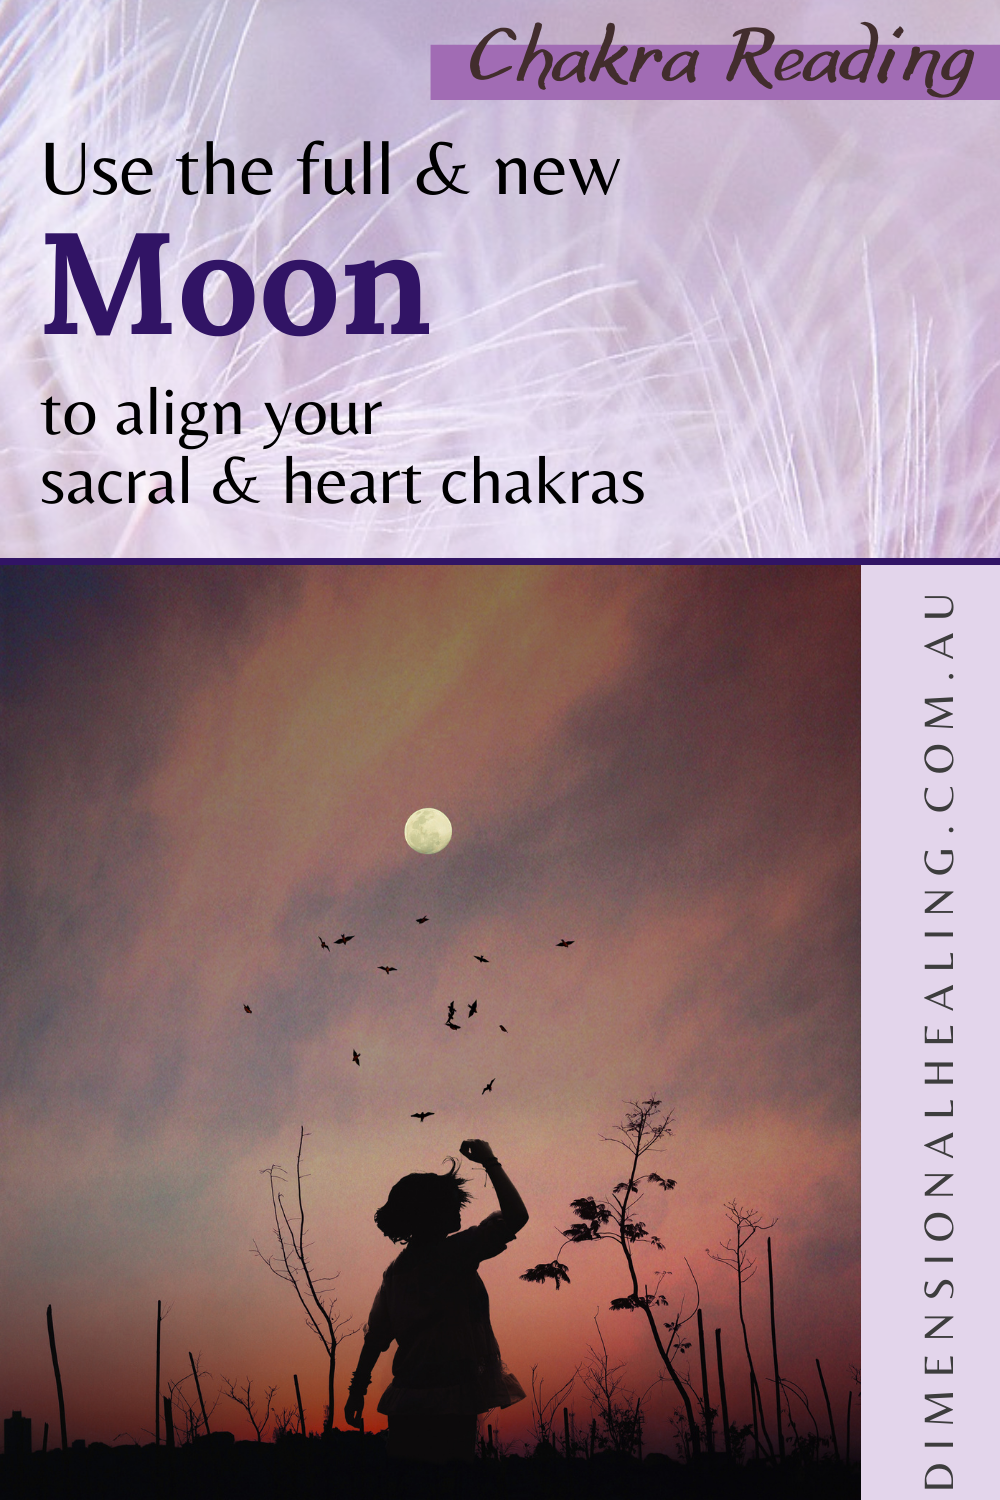 looking at the full moon for a lunar chakra reading